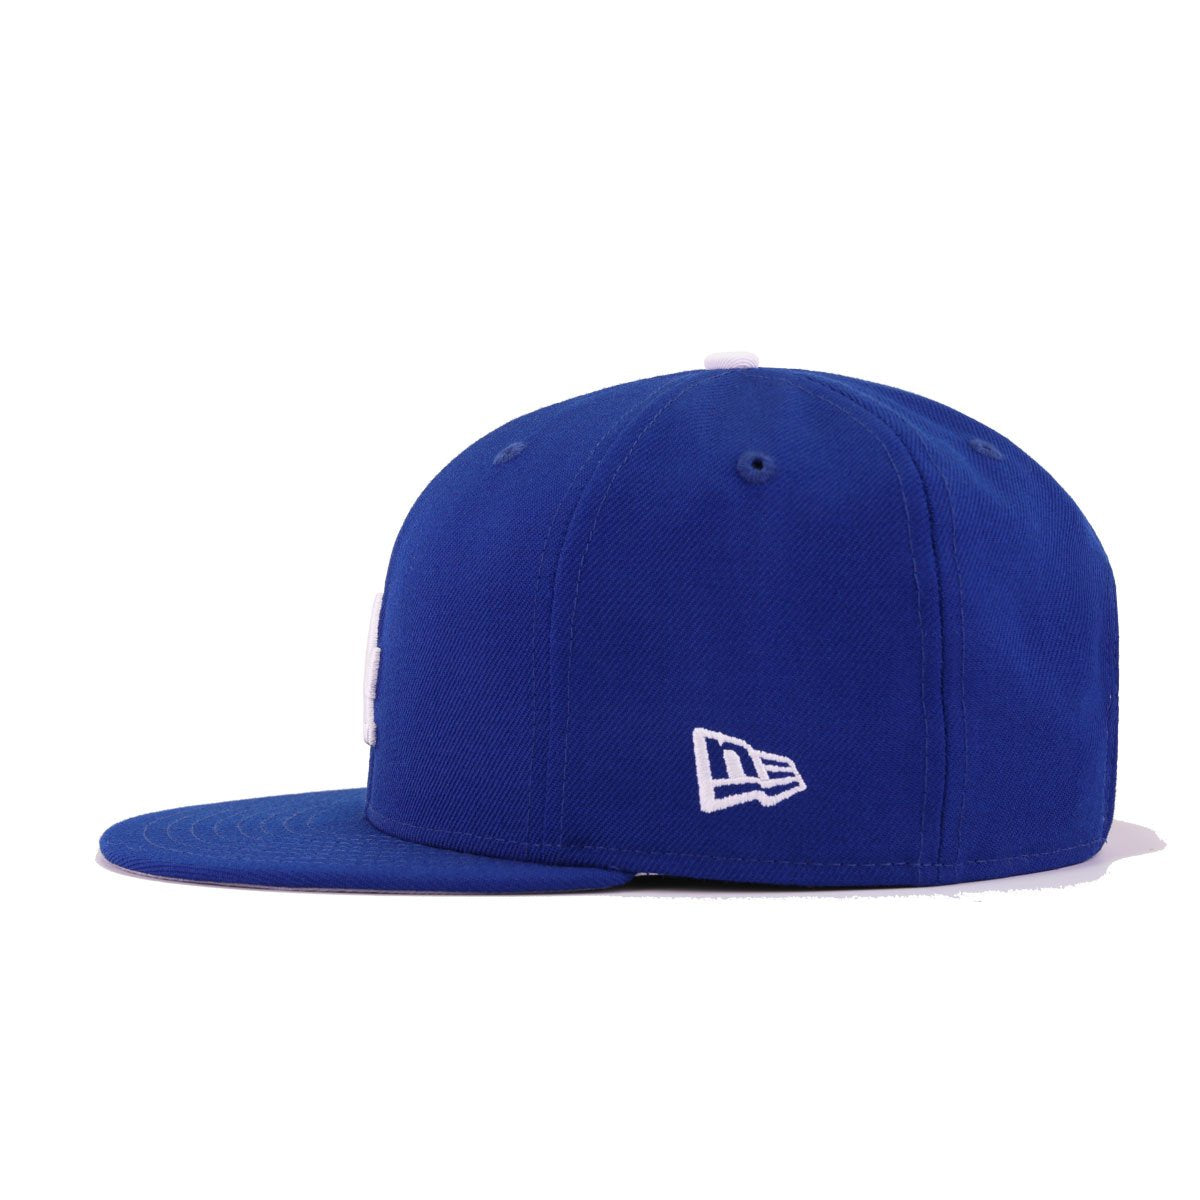 New Era Los Angeles Dodgers LA Anniversary Side Patch Snapback Hat Royal Blue